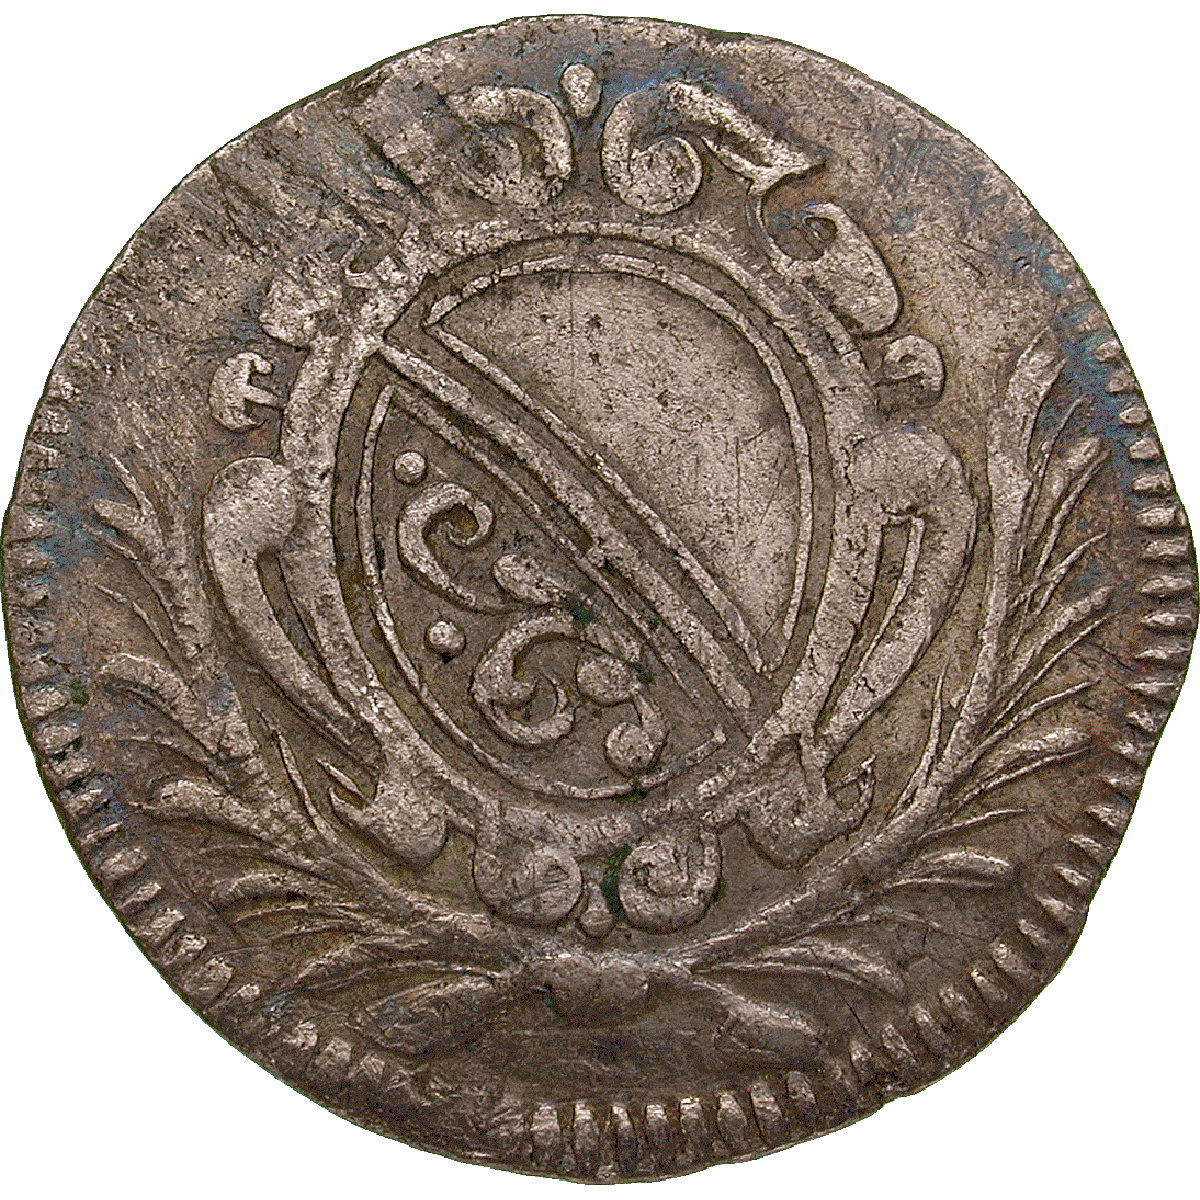 Republic of Zurich, 5 Schillings 1693 (obverse)